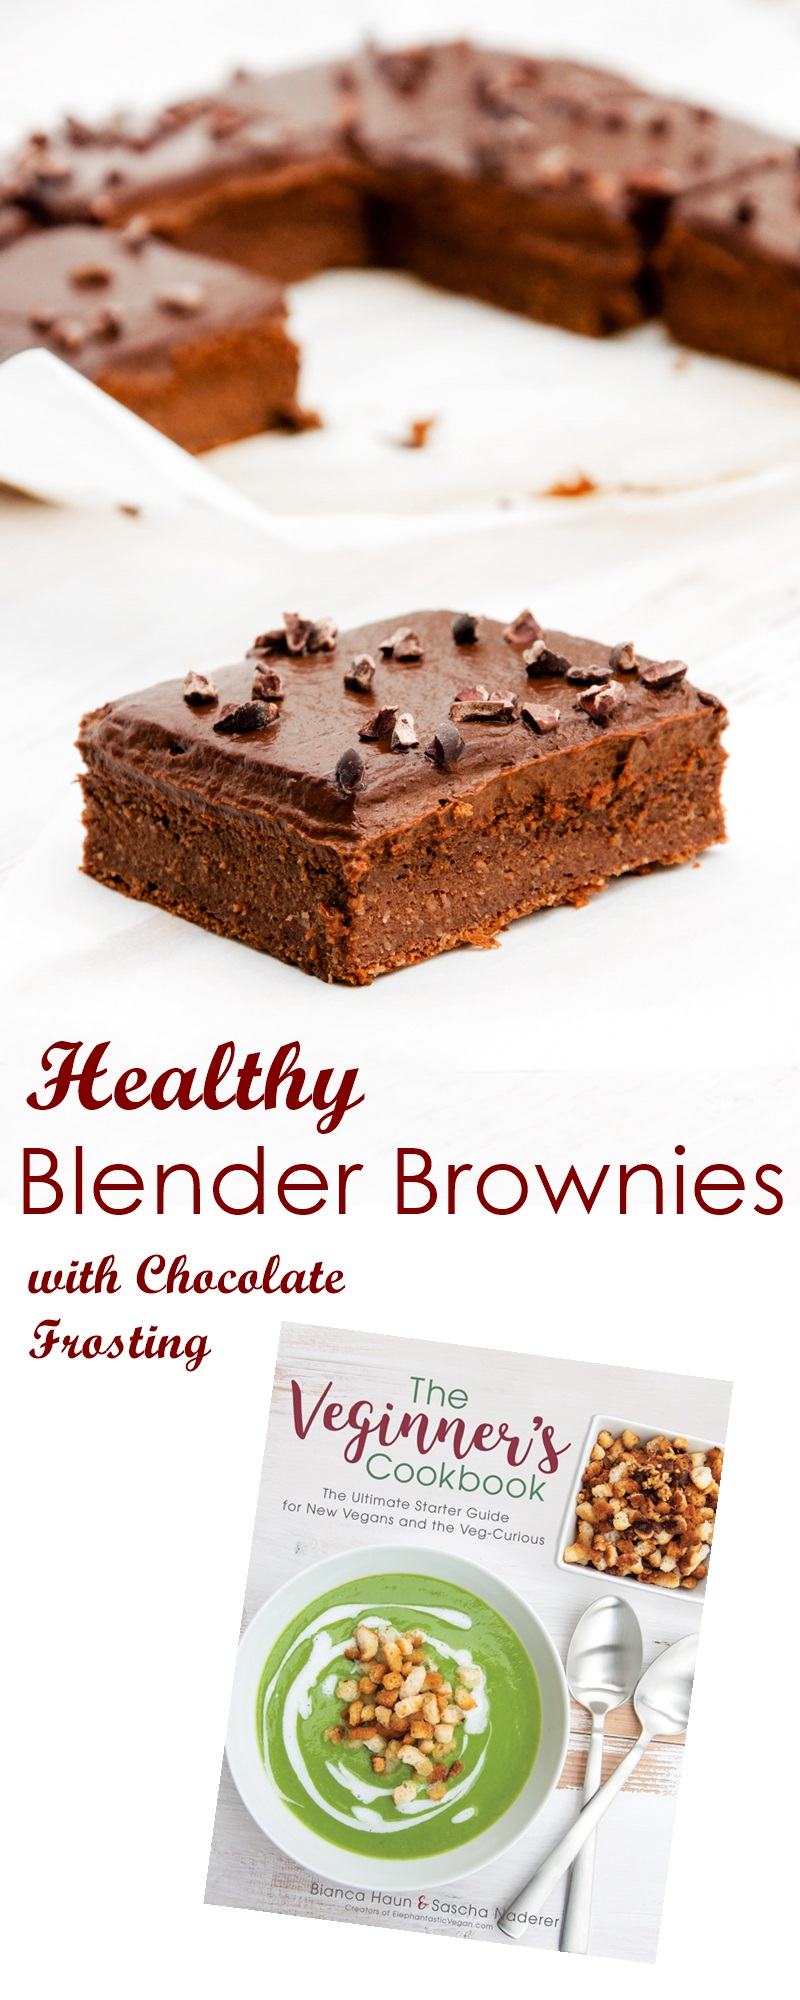 Healthy Blender Brownies with Chocolate Avocado Frosting - a sample Vegan Recipe from The Veginner's Cookbook #vegan #glutenfree #brownies